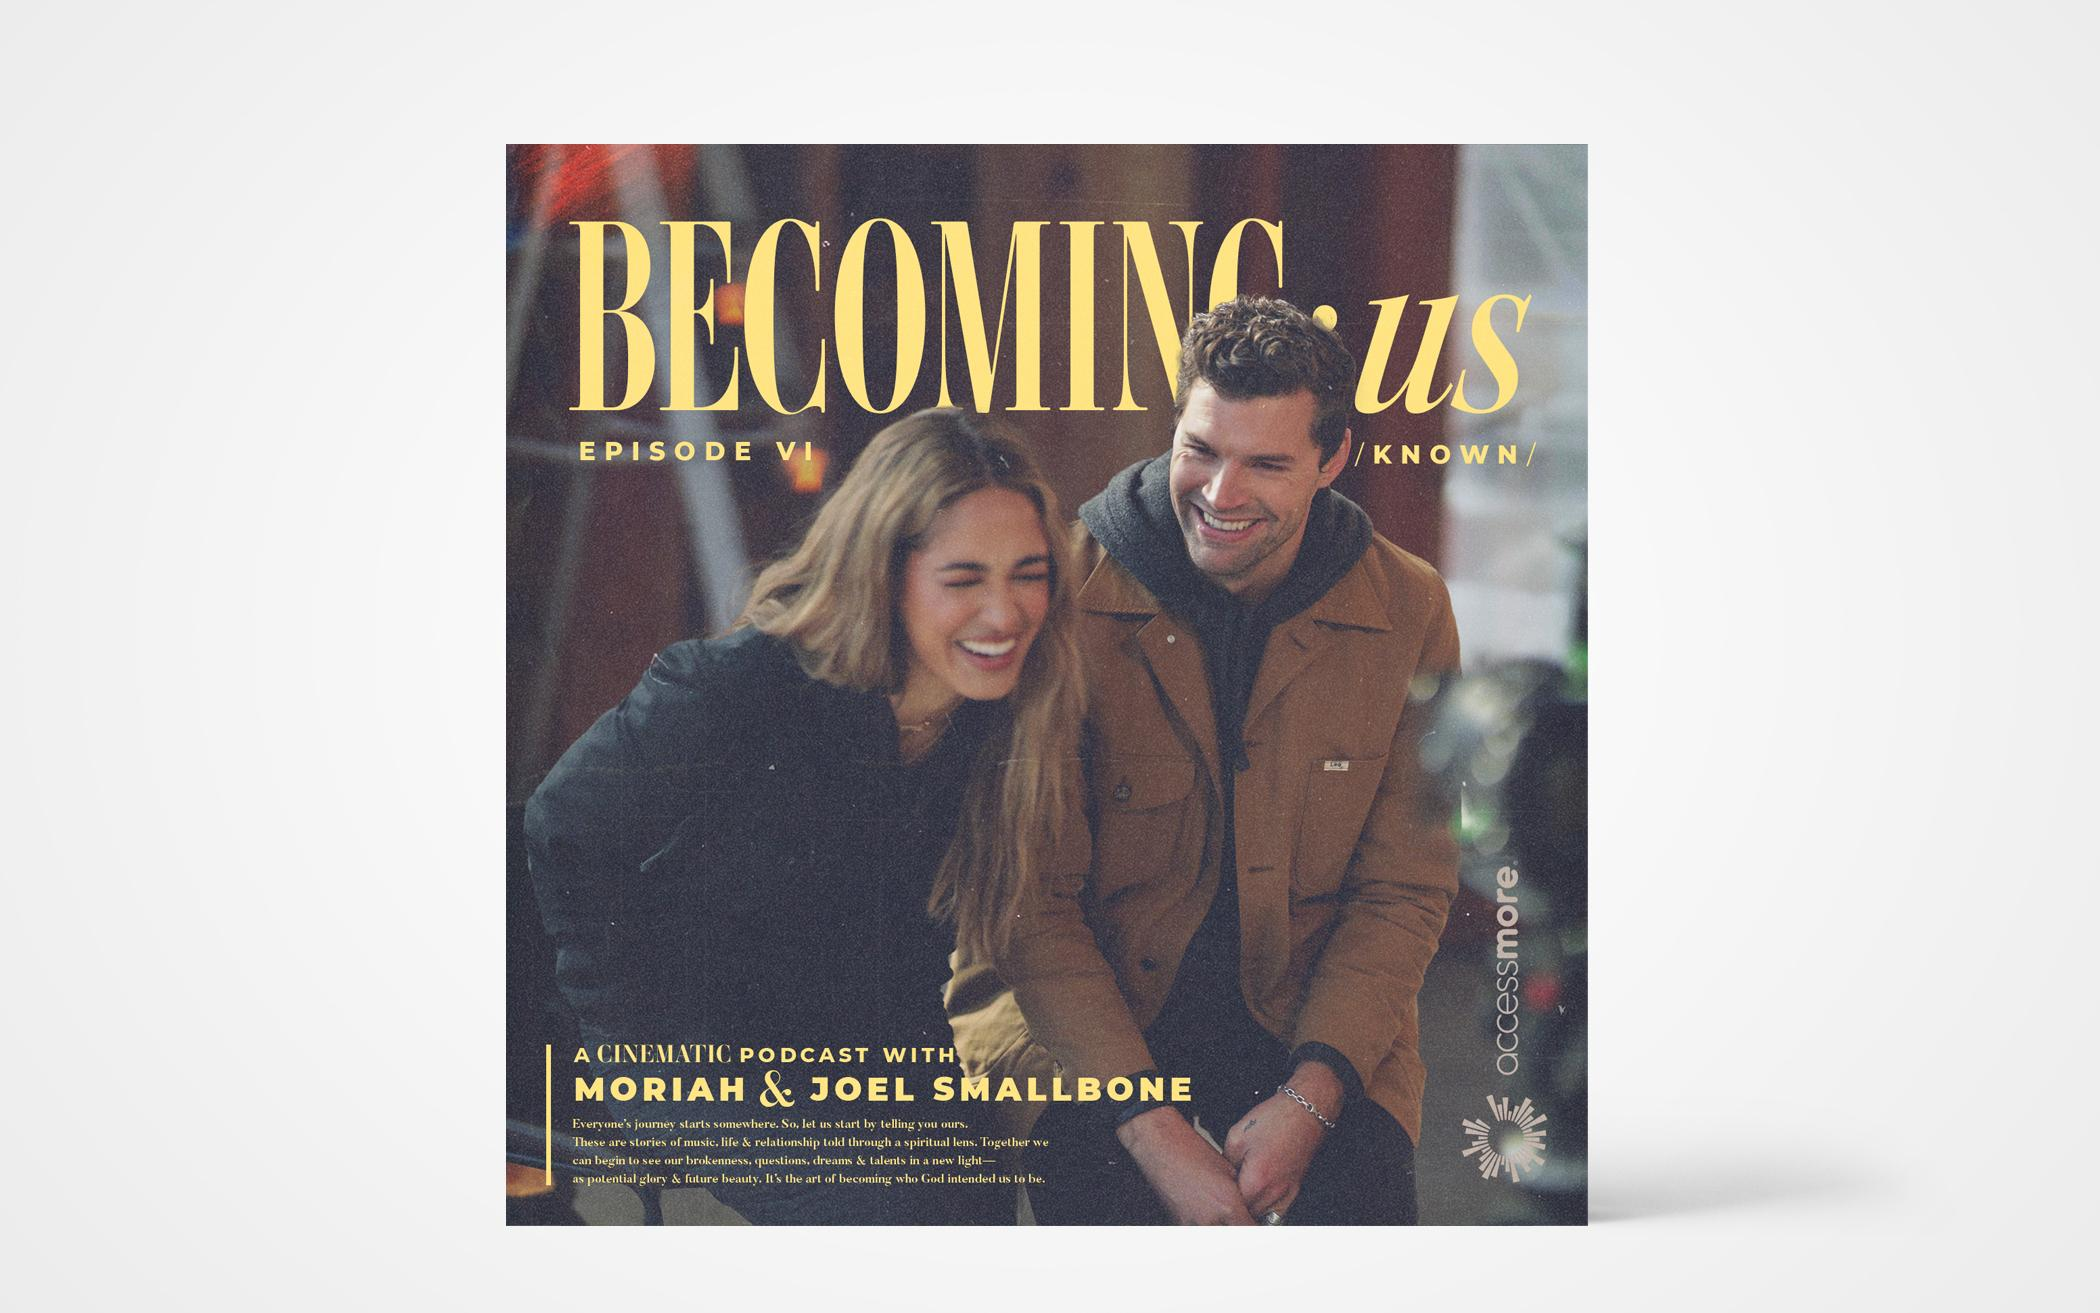 BECOMING:us Podcast